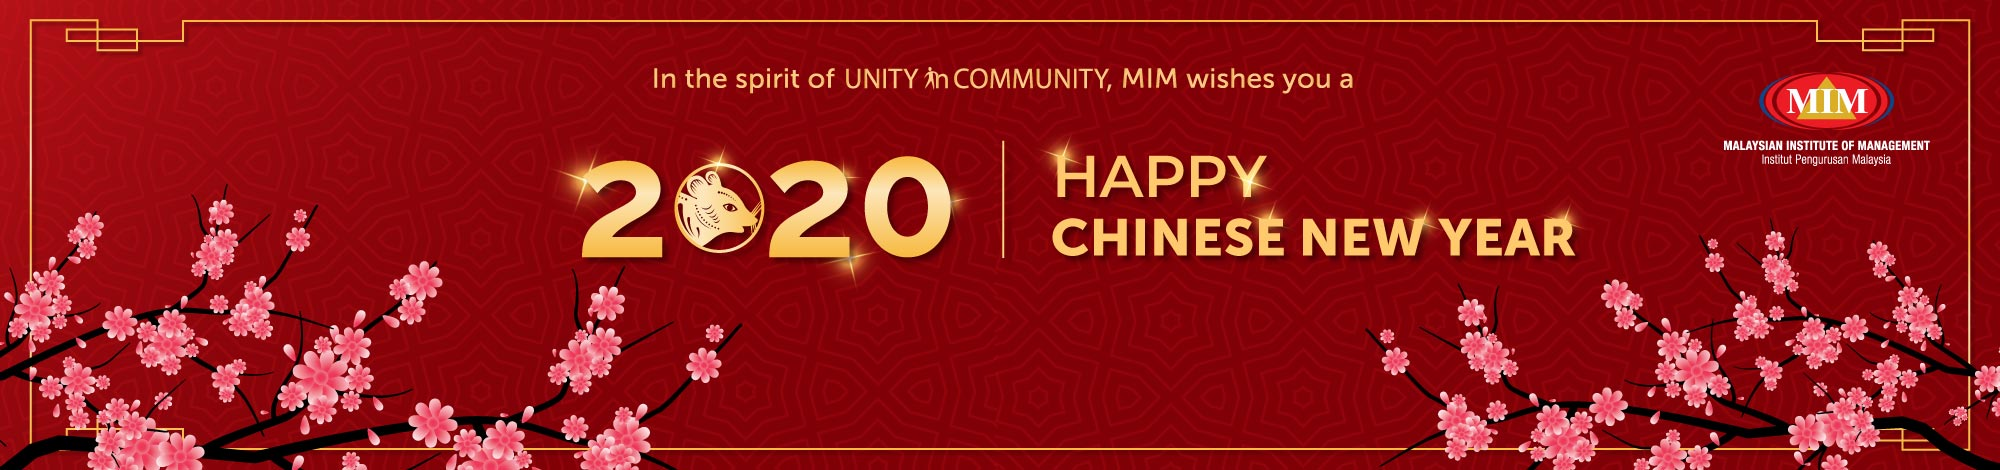 Social-media-banner_Chinese-New-Year-2020